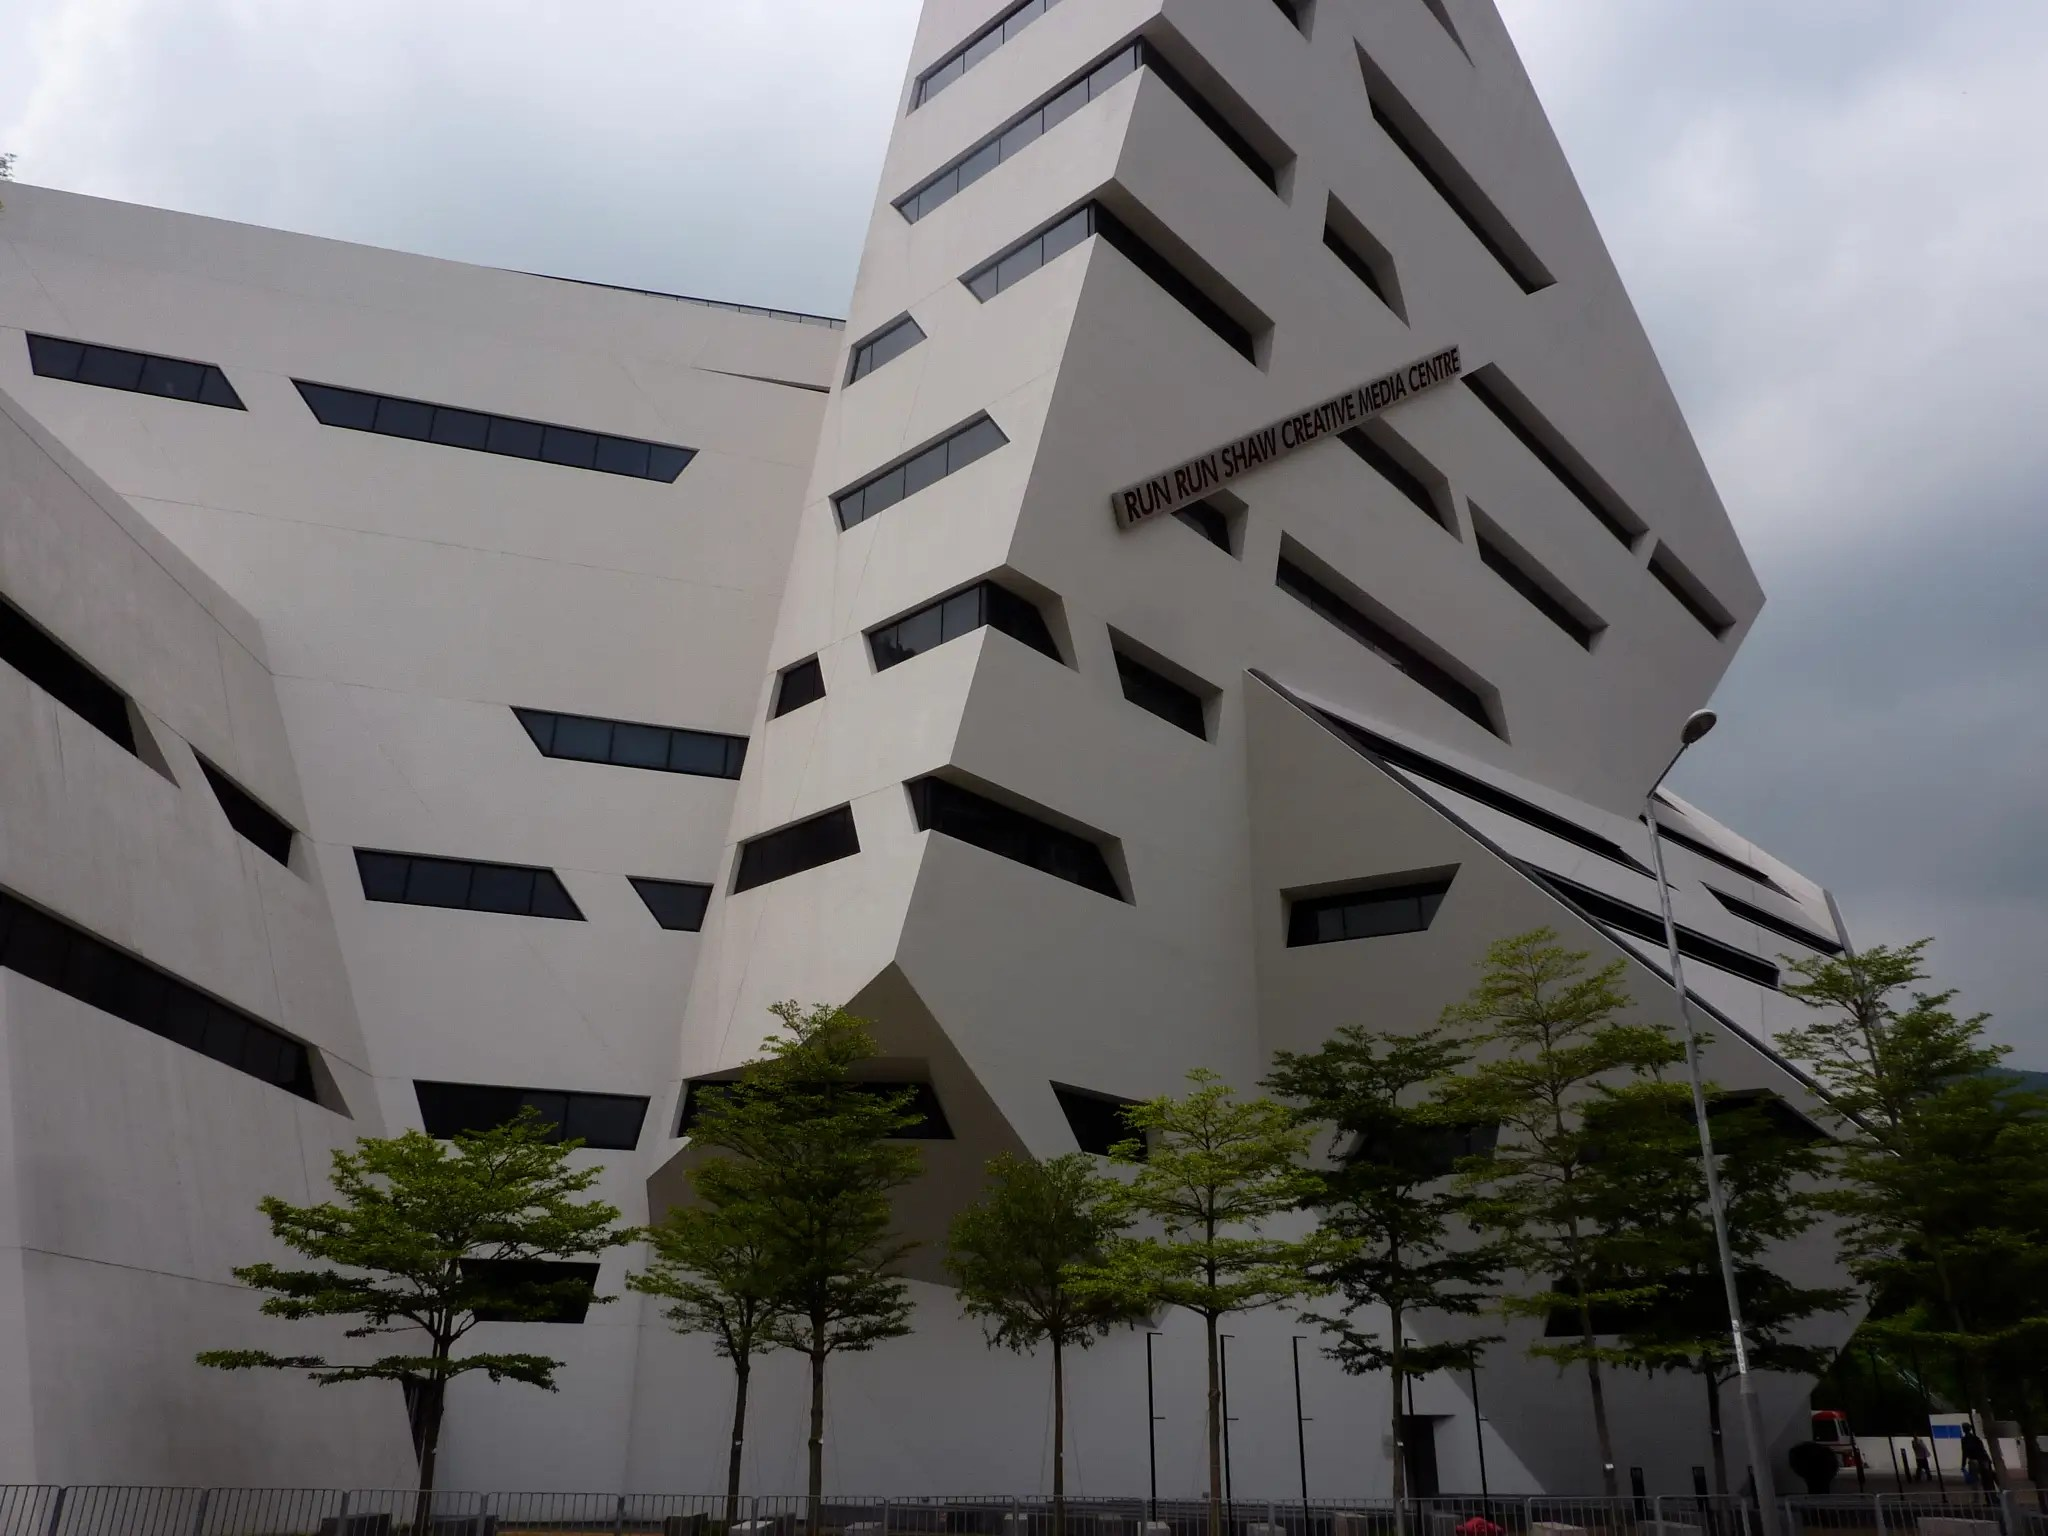 The Run Run Shaw Creative Media Centre at the City University of Hong Kong was designed by New York-based architect Daniel Libeskind. It houses laboratories, theaters, and classrooms for the school's departments of computer engineering and media technology.